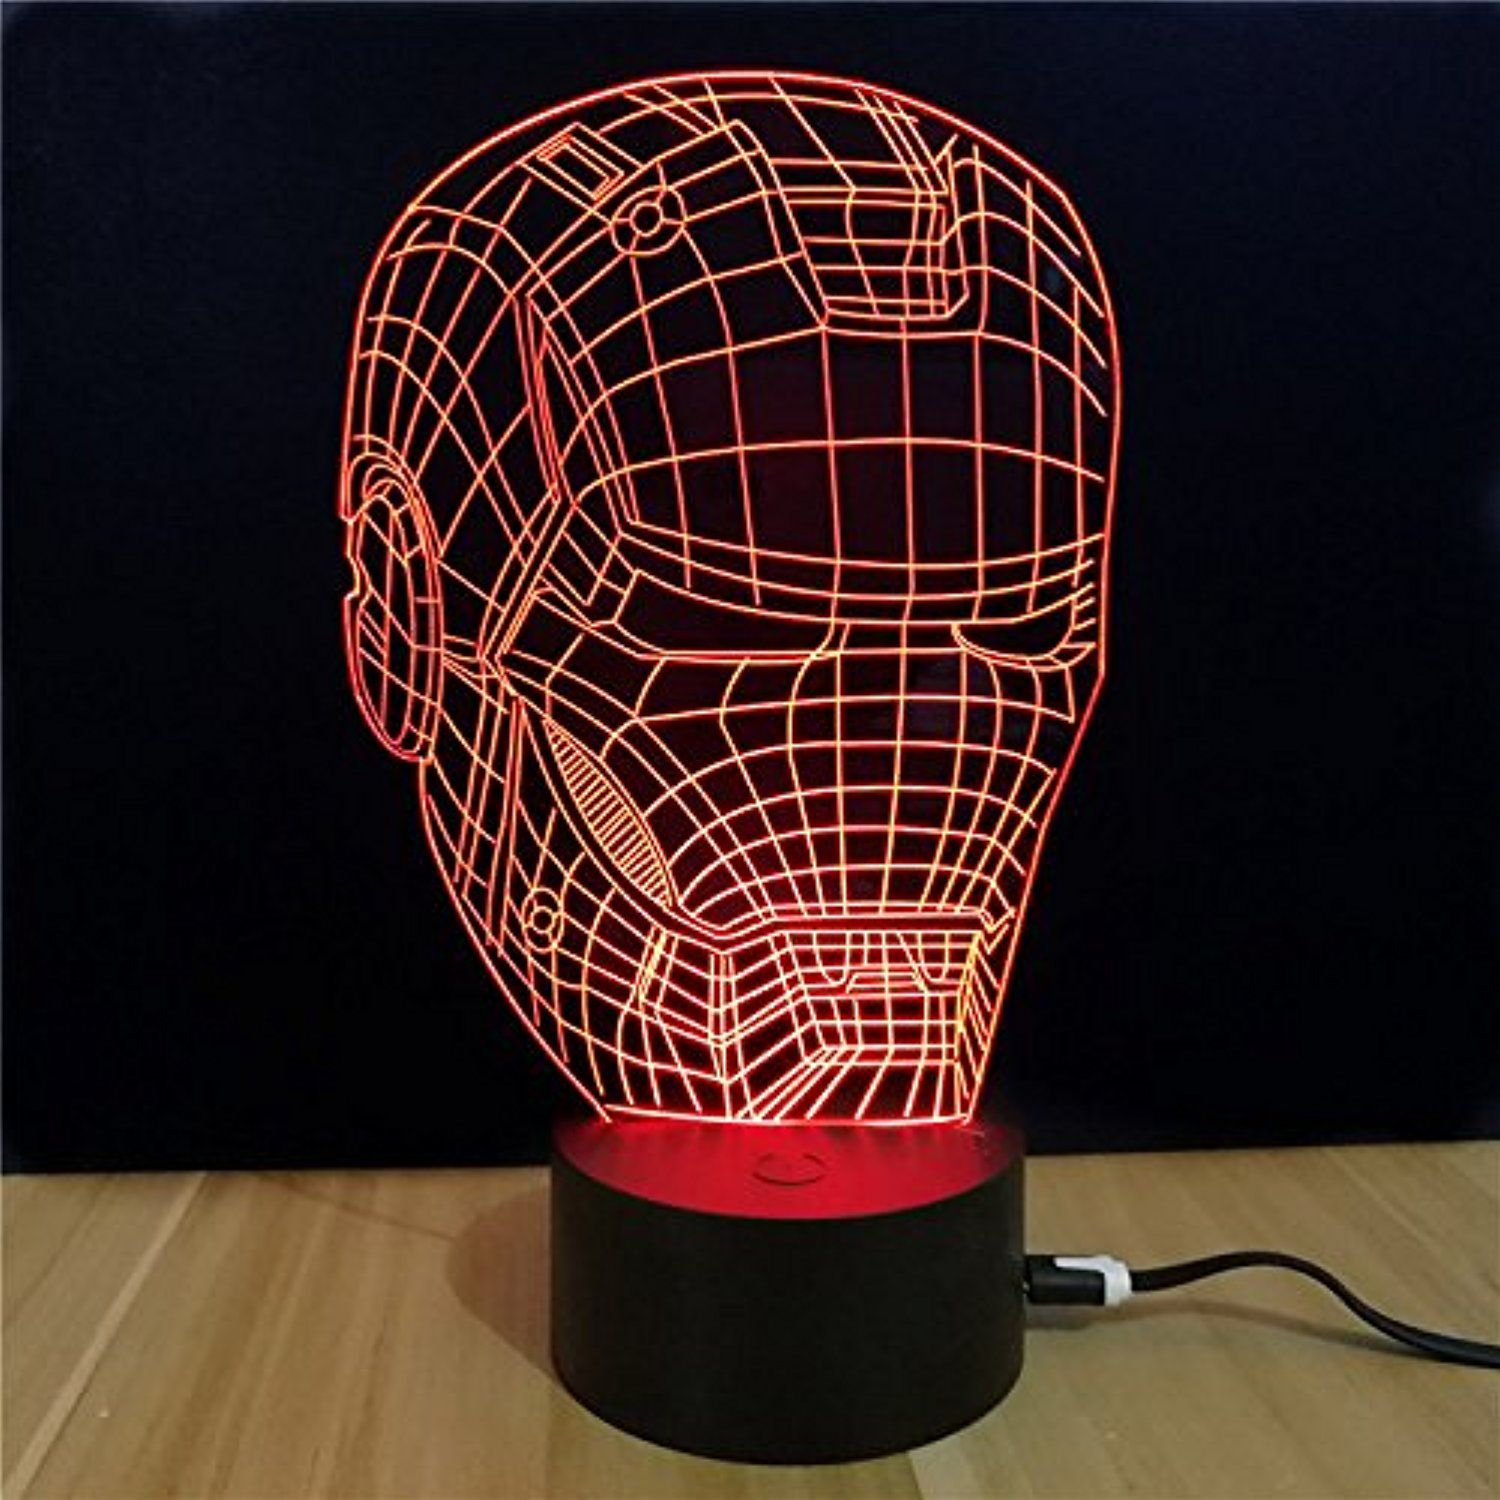 3d Led Illusion Lamp Iron Man 2 3d Visualization Illusion Led Table Light With Touch Button 7 Colors Change To 3d Led Night Light Night Light Led Night Light